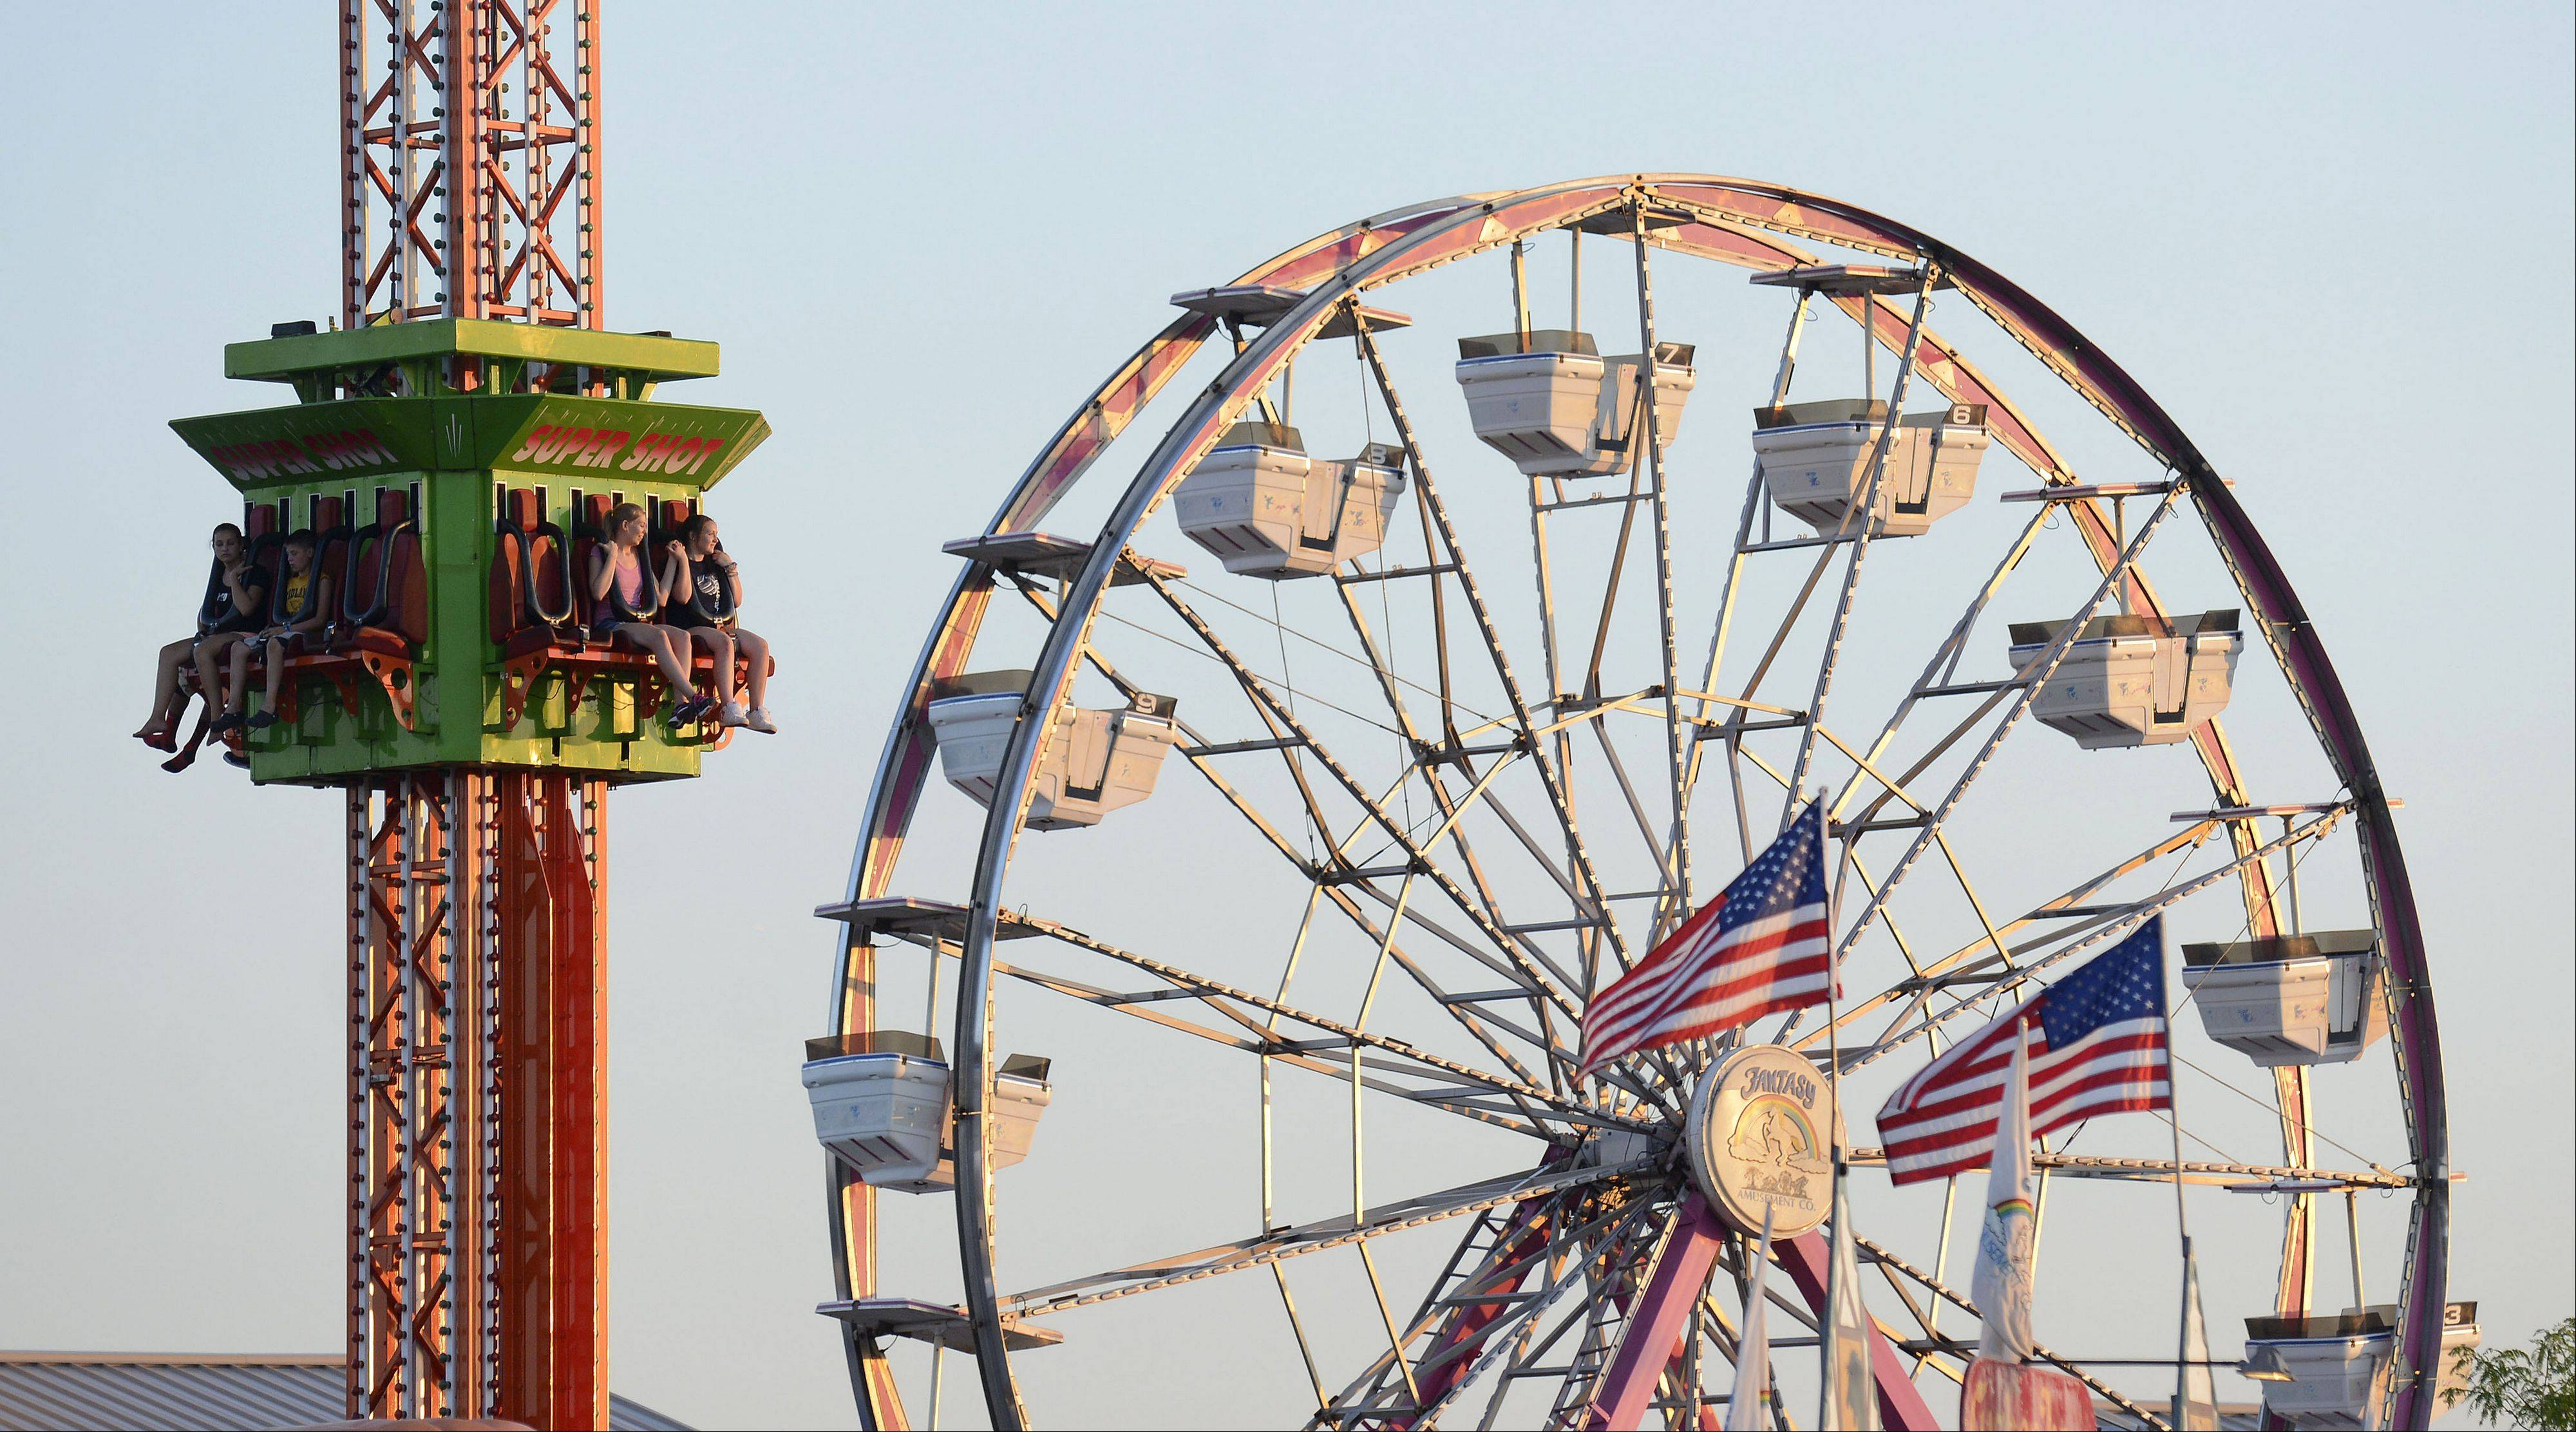 Riders on the Super Shot are raised the track at the Kane County Fair in St. Charles on Wednesday, July 17.